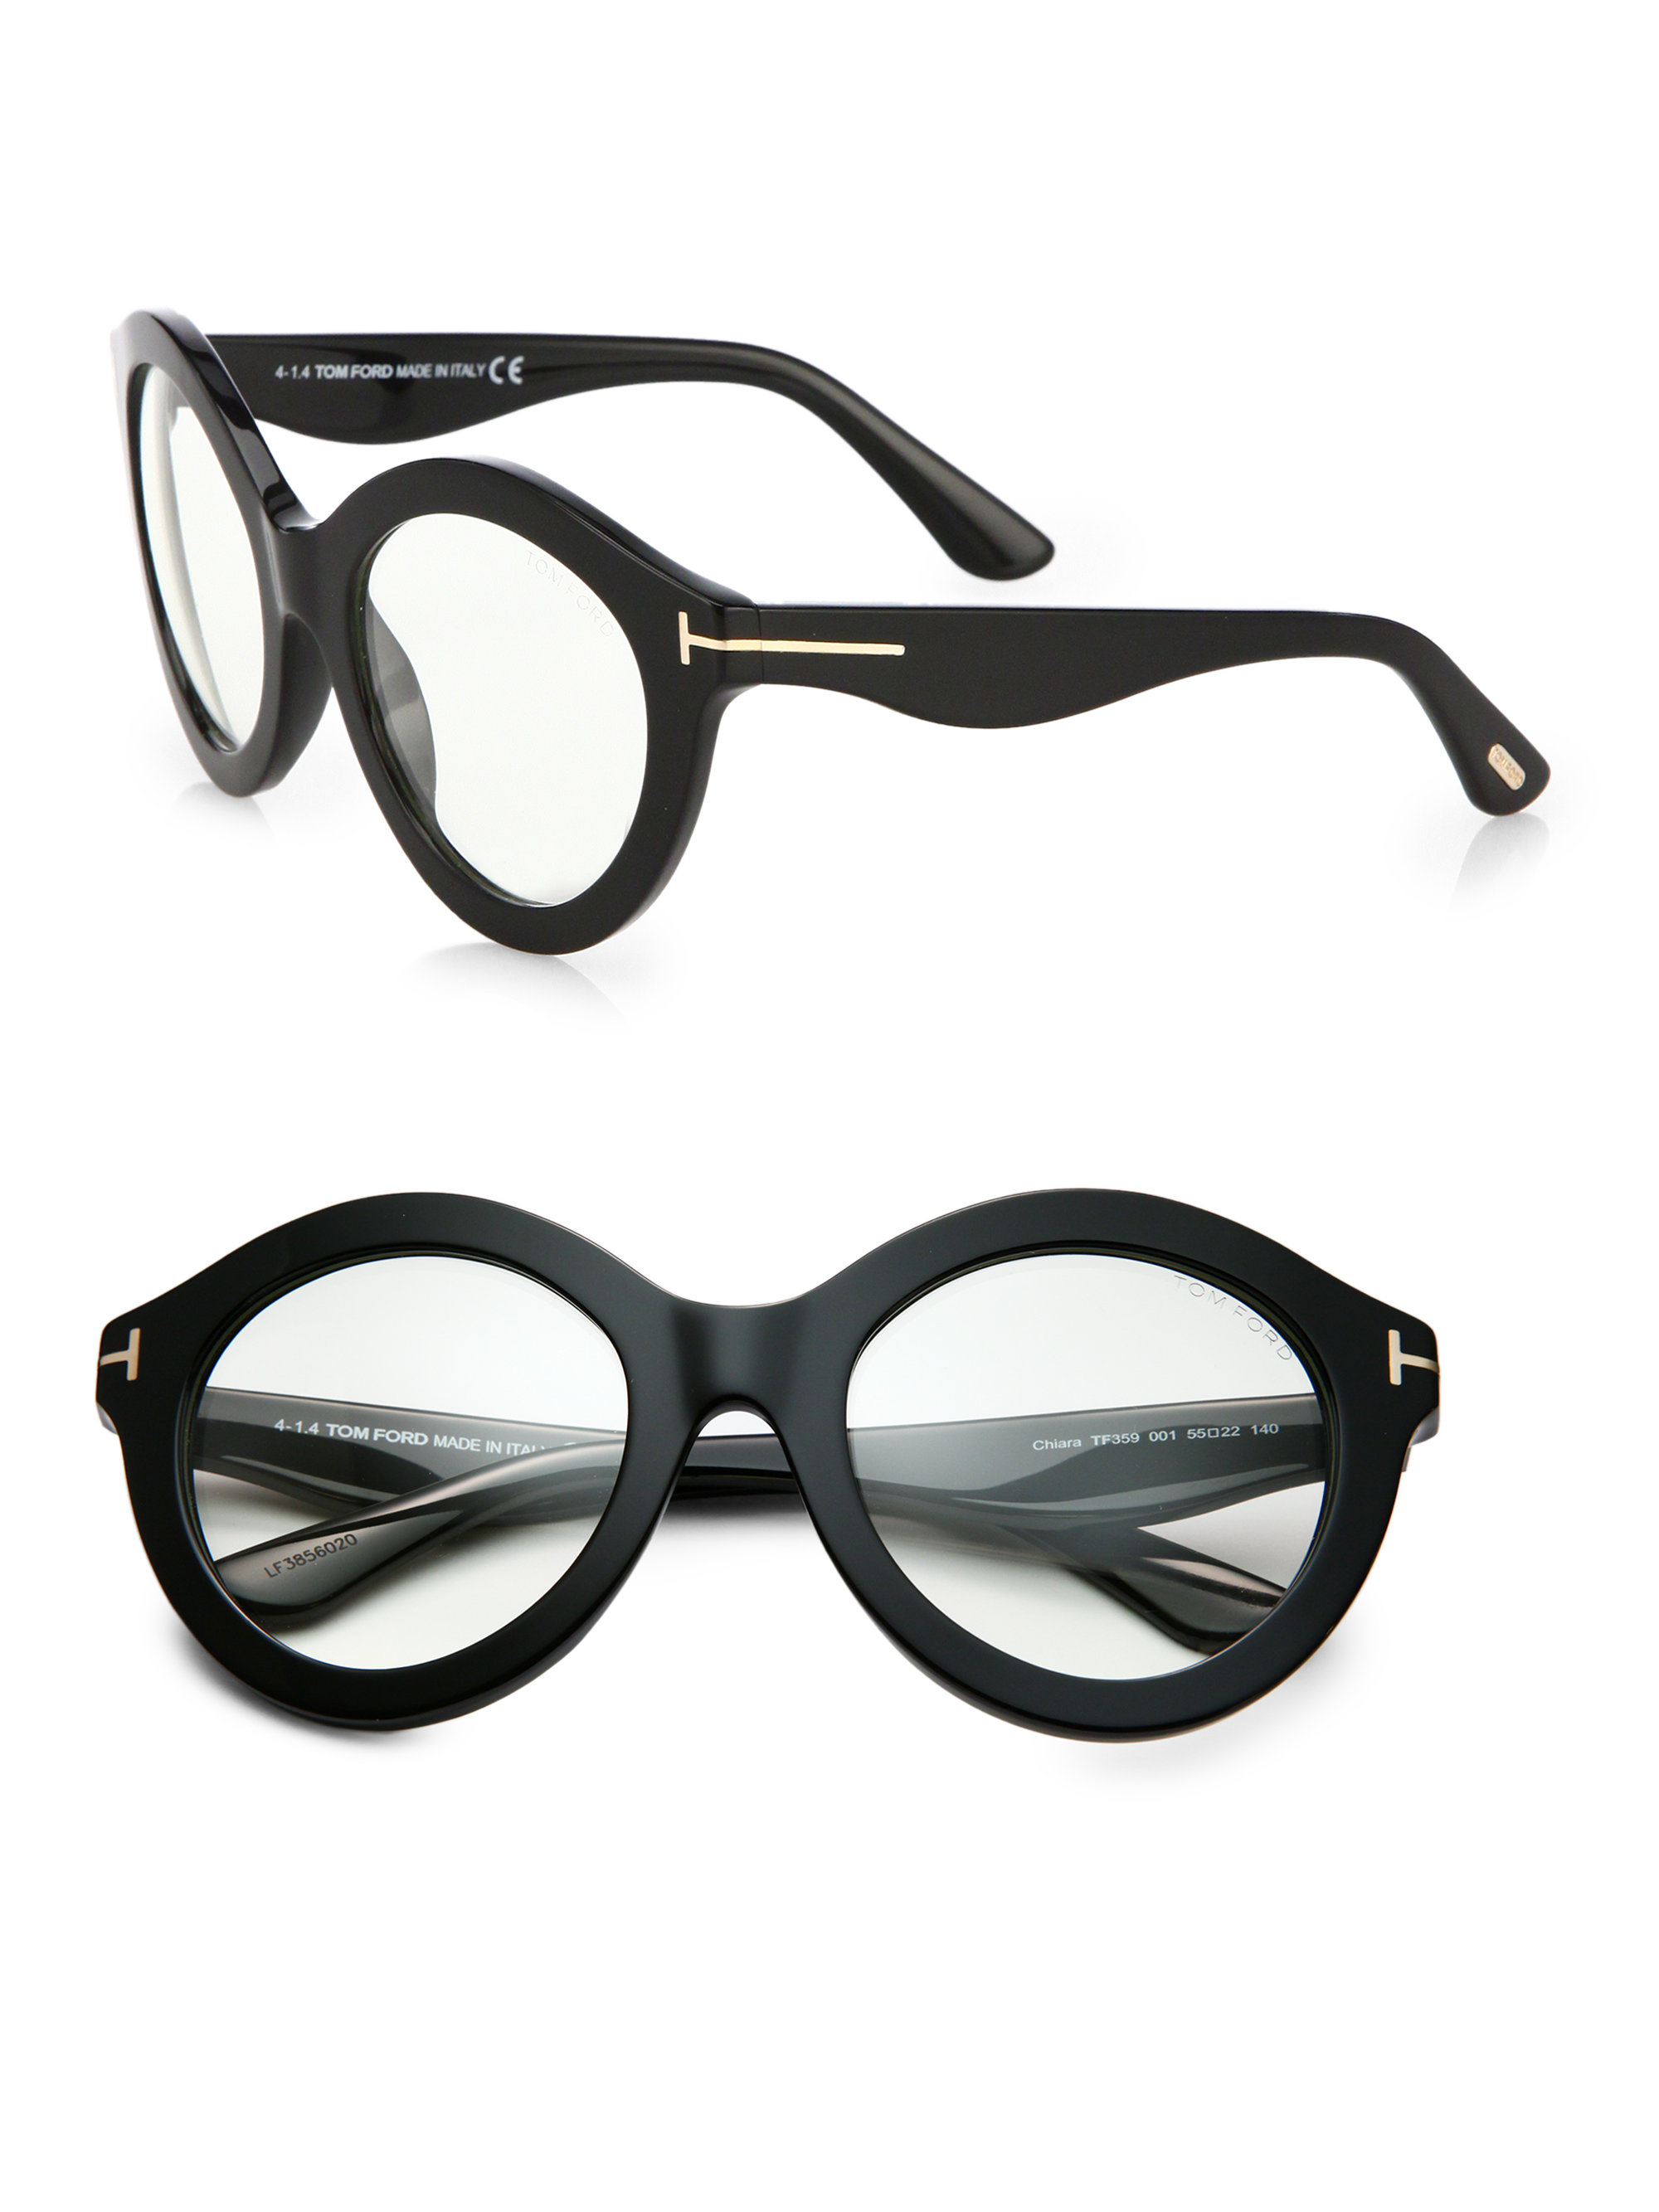 e6c1e316040 Lyst - Tom Ford Exaggerated 55mm Round Optical Glasses in Black